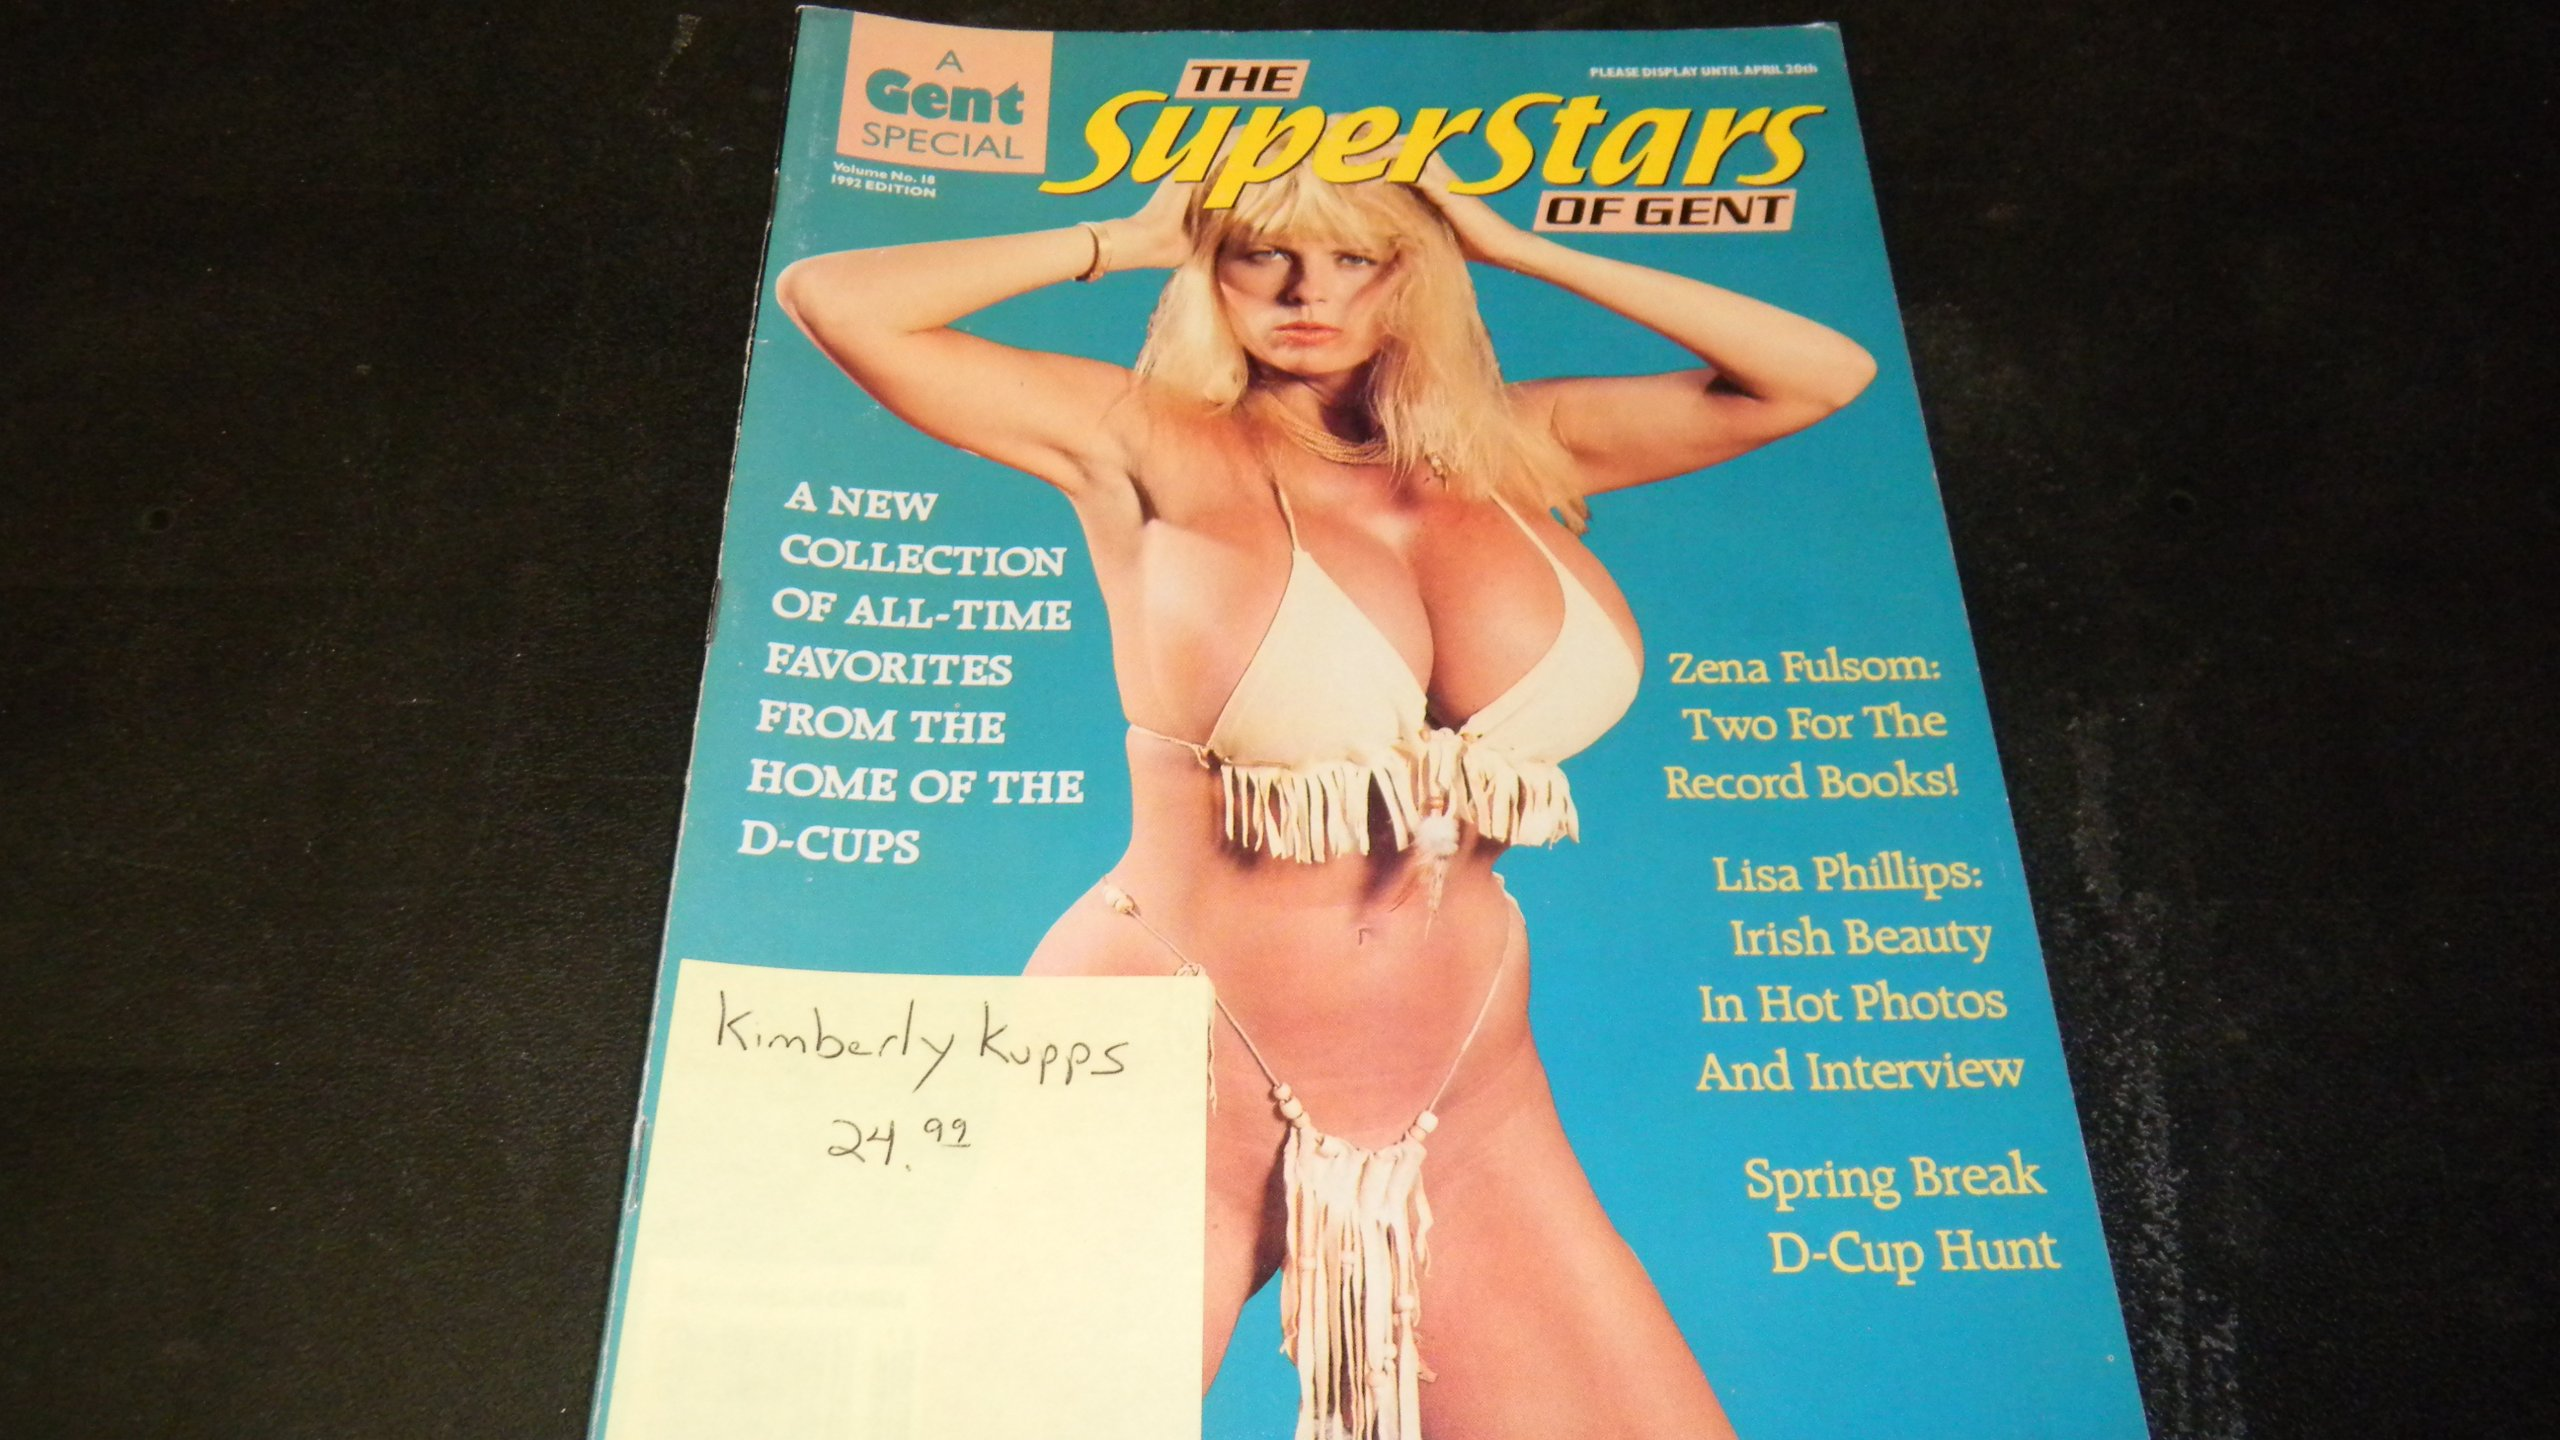 Gent Busty Adult Magazine Superstars Special No 18 1992 Edition Kimberly Kupps Unbound 1992